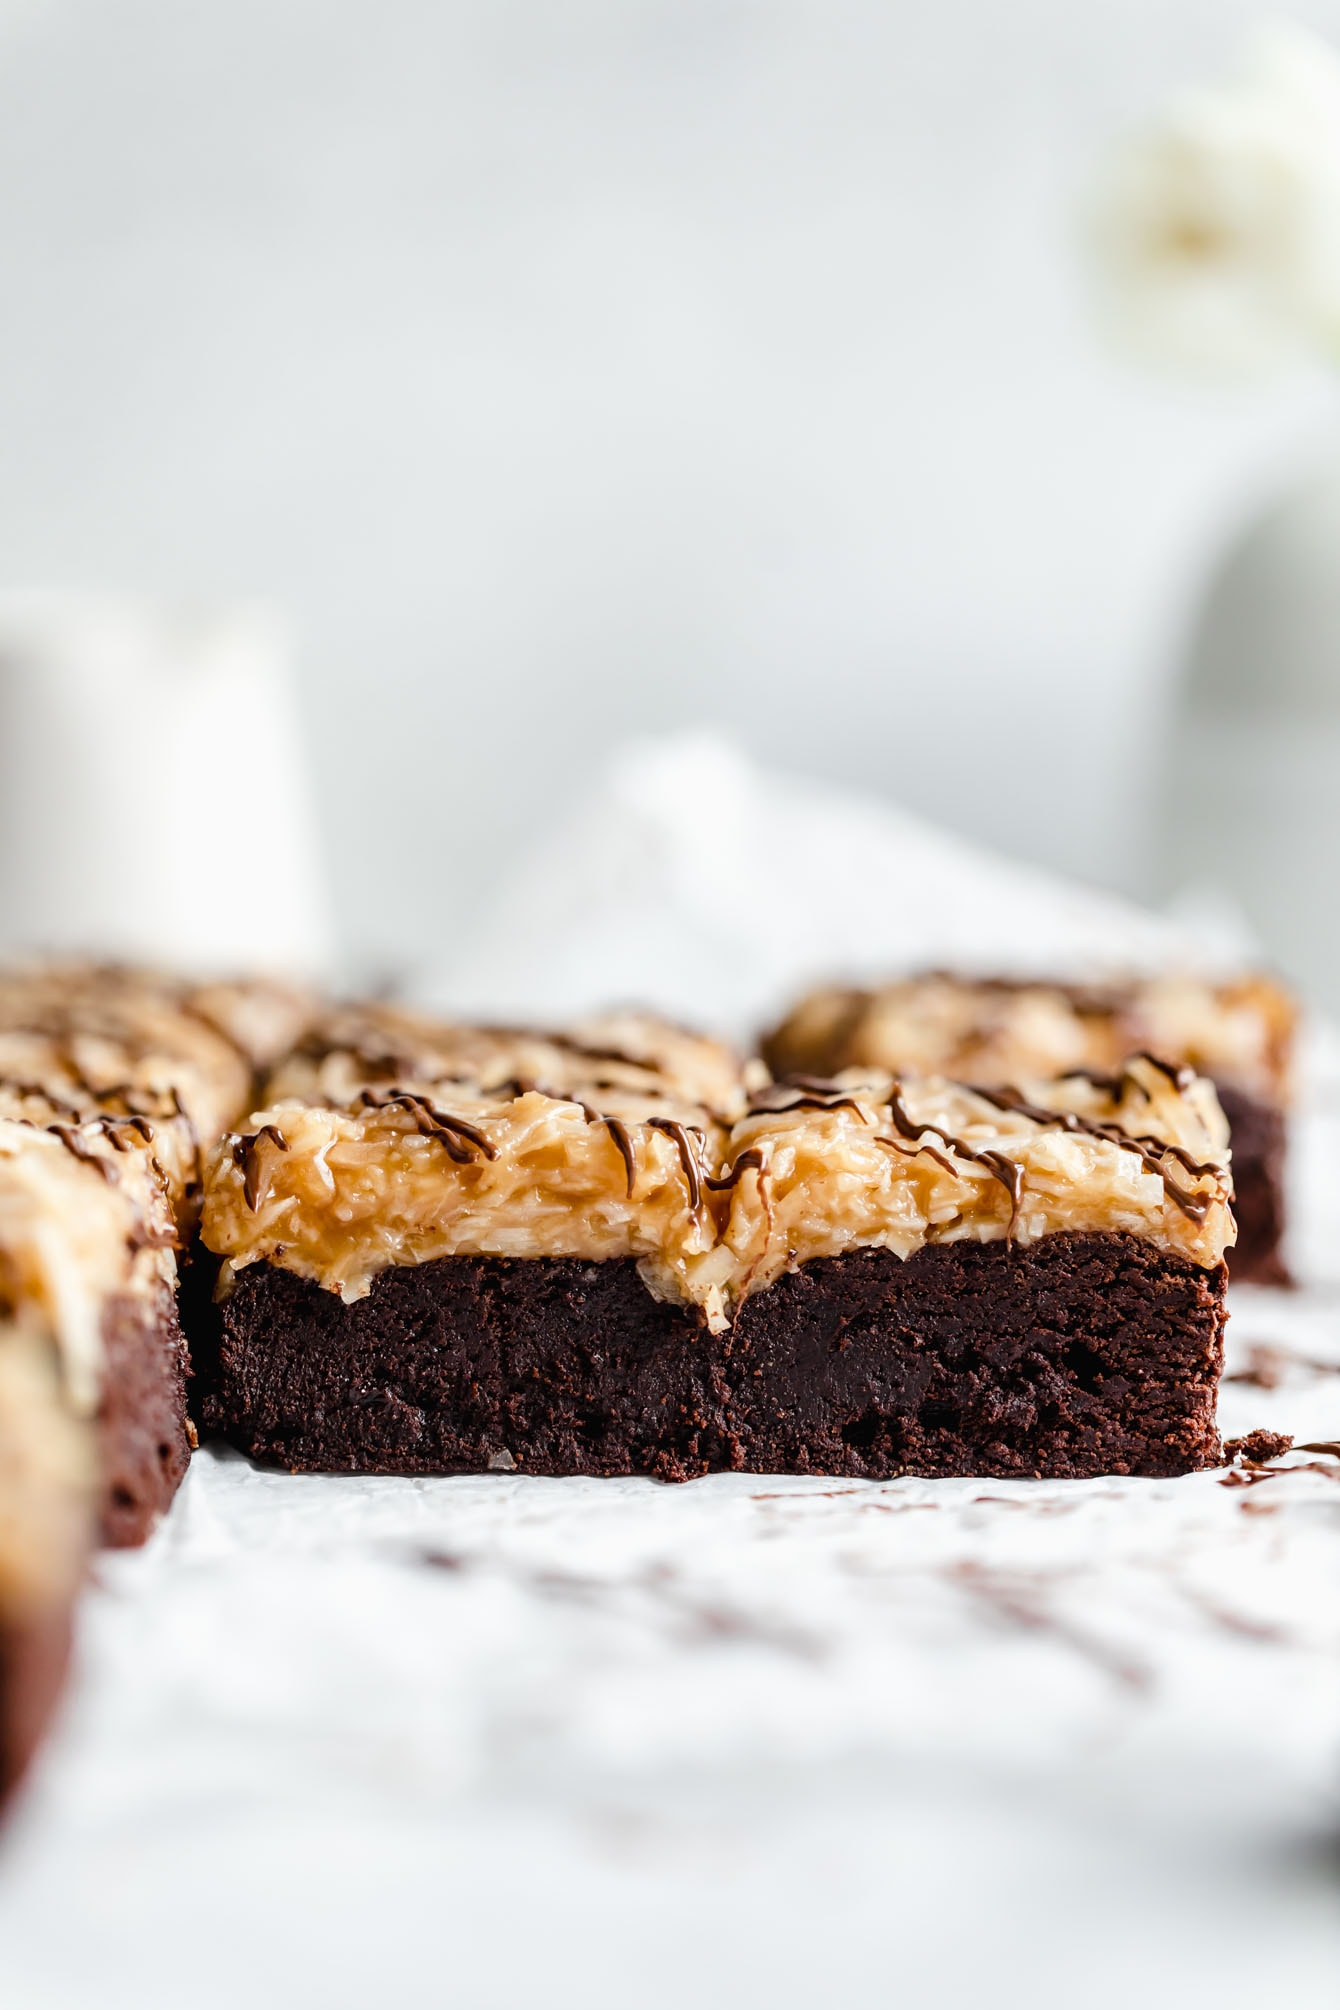 These Samoa brownies are fudgy brownies topped with homemade coconut caramel sauce and drizzled with chocolate. Perfect for any Girl Scout cookie lover!